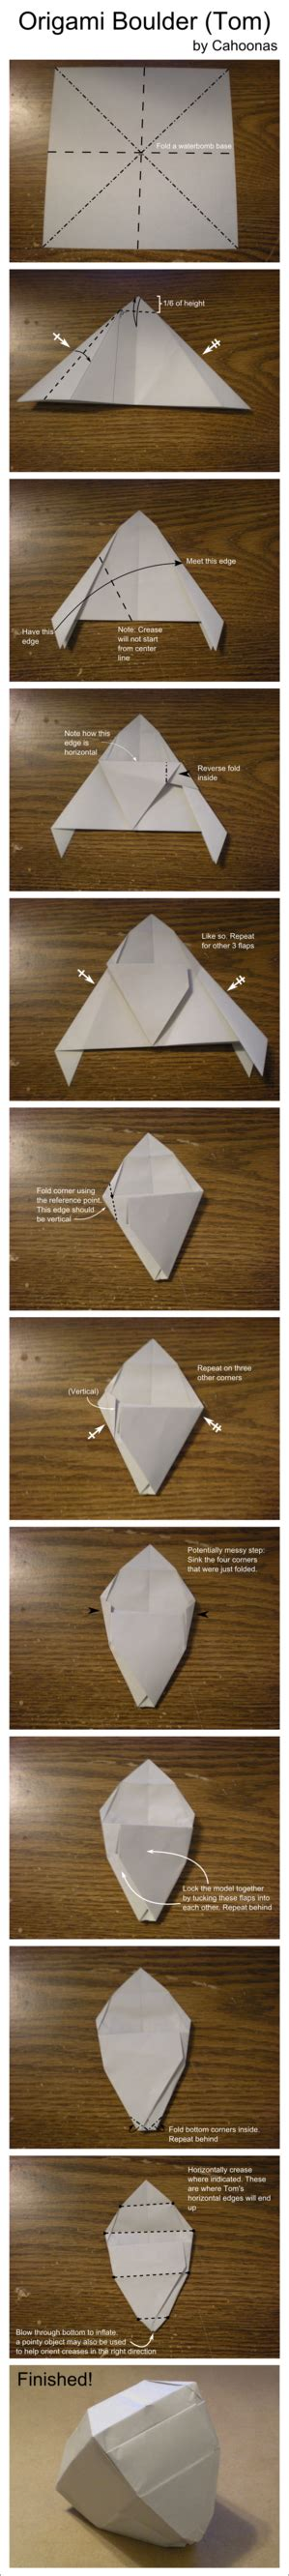 origami rock origami rock tom diagram by cahoonas on deviantart